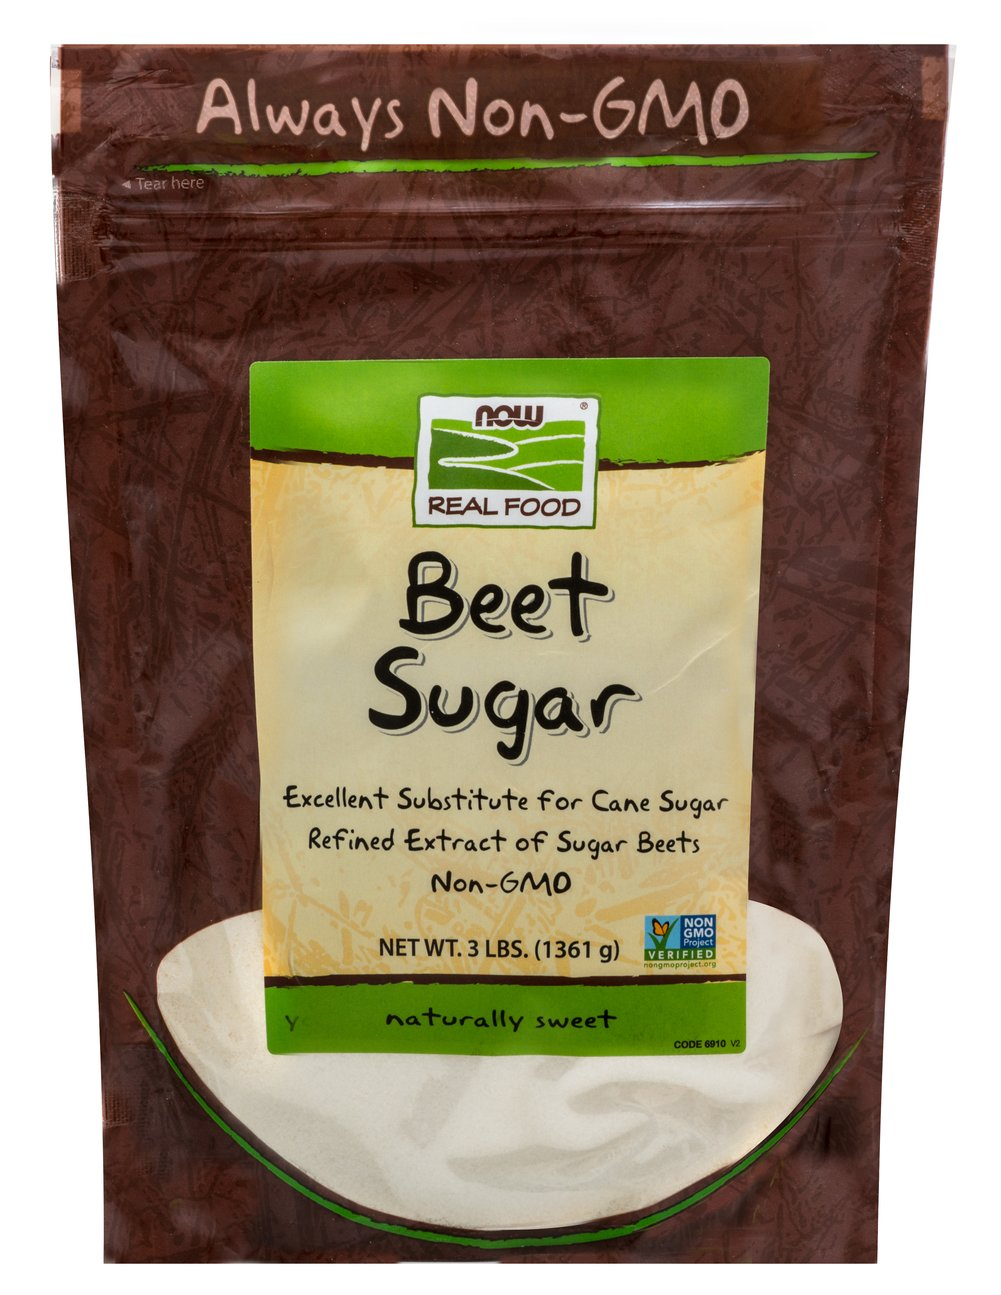 Beet Sugar <p><strong>From the Manufacturer's Label:</strong></p><p>NOW® Real Food™ Beet Sugar is the refined extract of sugar beets and is 99.9% sucrose, making it an ideal substitute for cane sugar in most recipes. Persons with intolerance to refined cane sugar will find beet sugar to be a worthy replacement. 100% pure, natural Beet Sugar with no added ingredients.</p> 3 lb Bag  $6.99